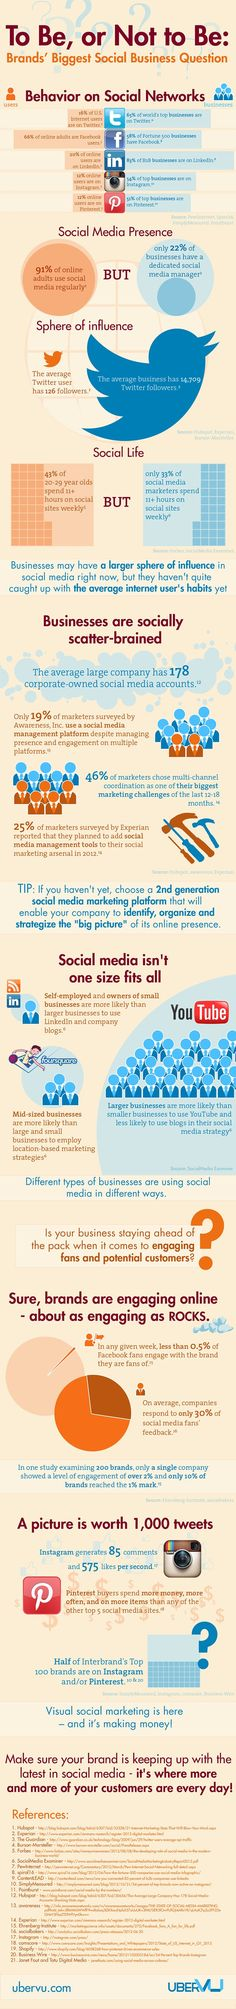 Brand's biggest social business question #infografia #infographic #socialmedia